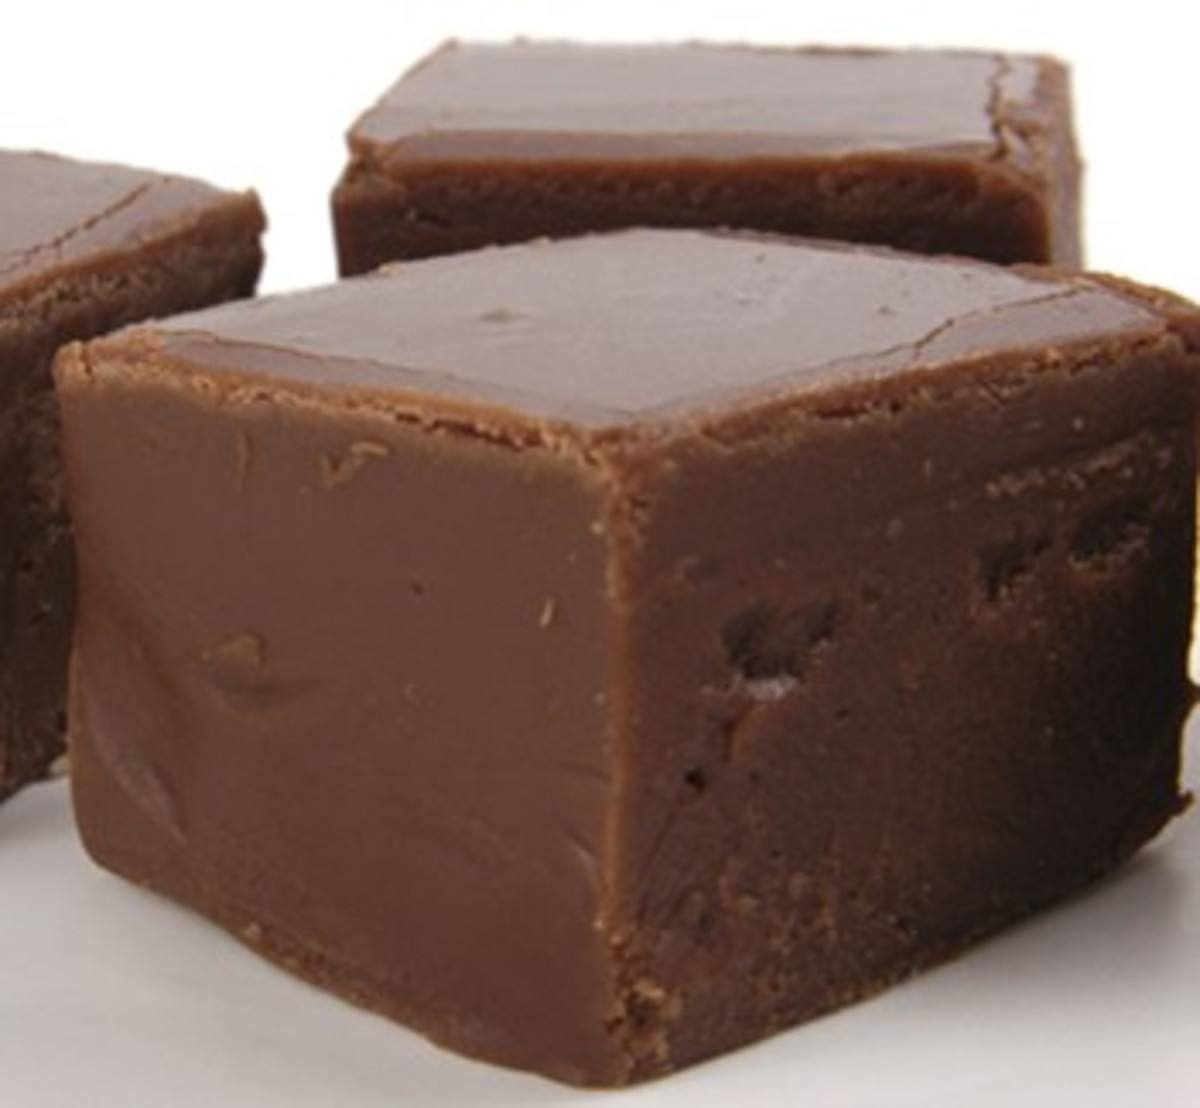 A chocolate fudge